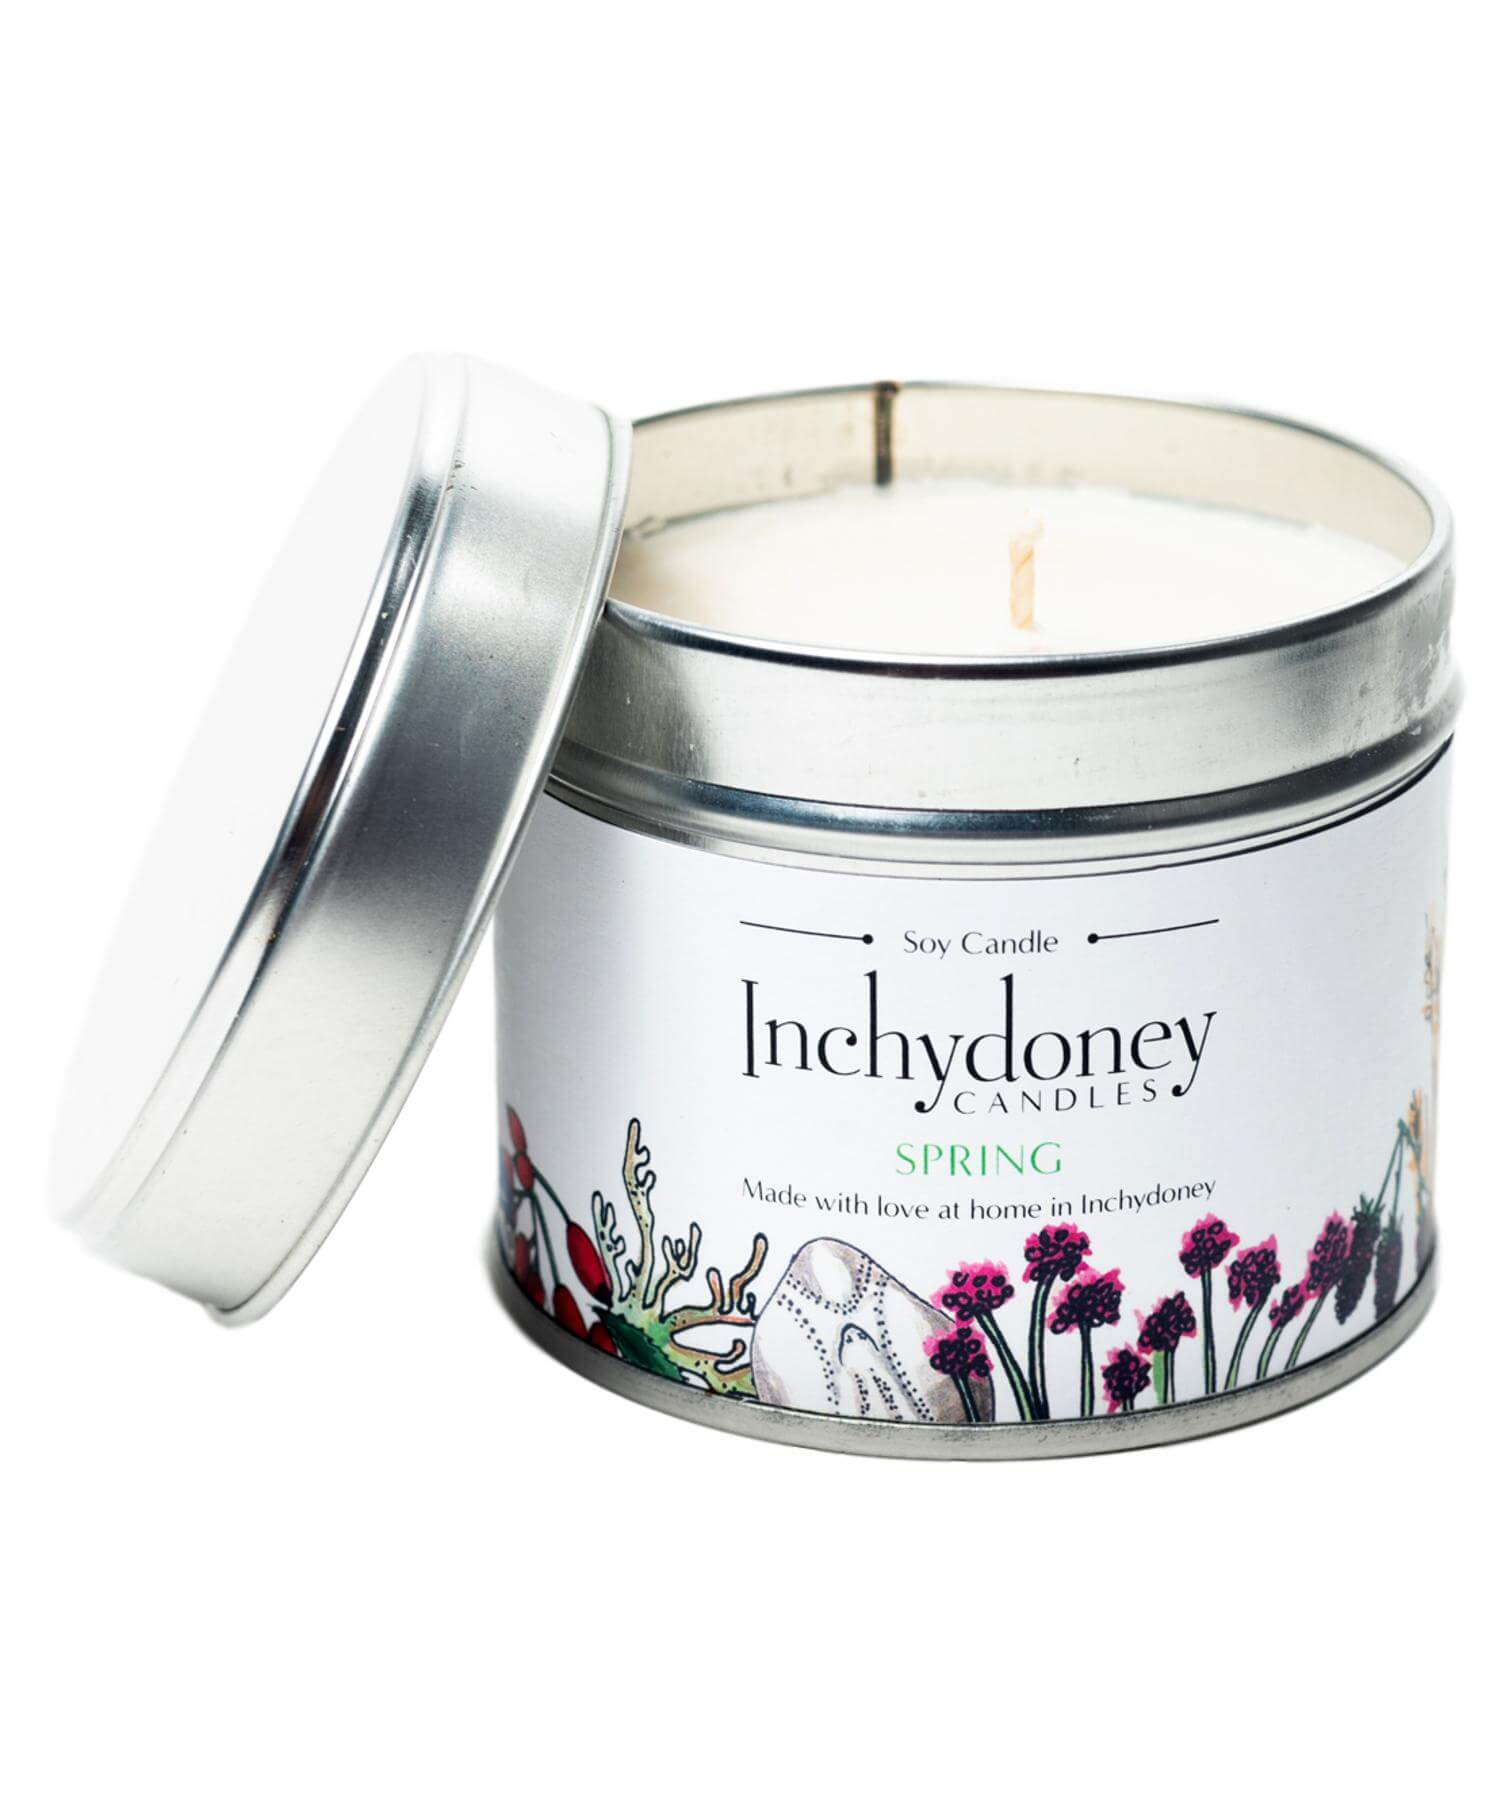 Travel Candle - Spring - [Inchydoney Candles] - Home Fragrance - Irish Gifts